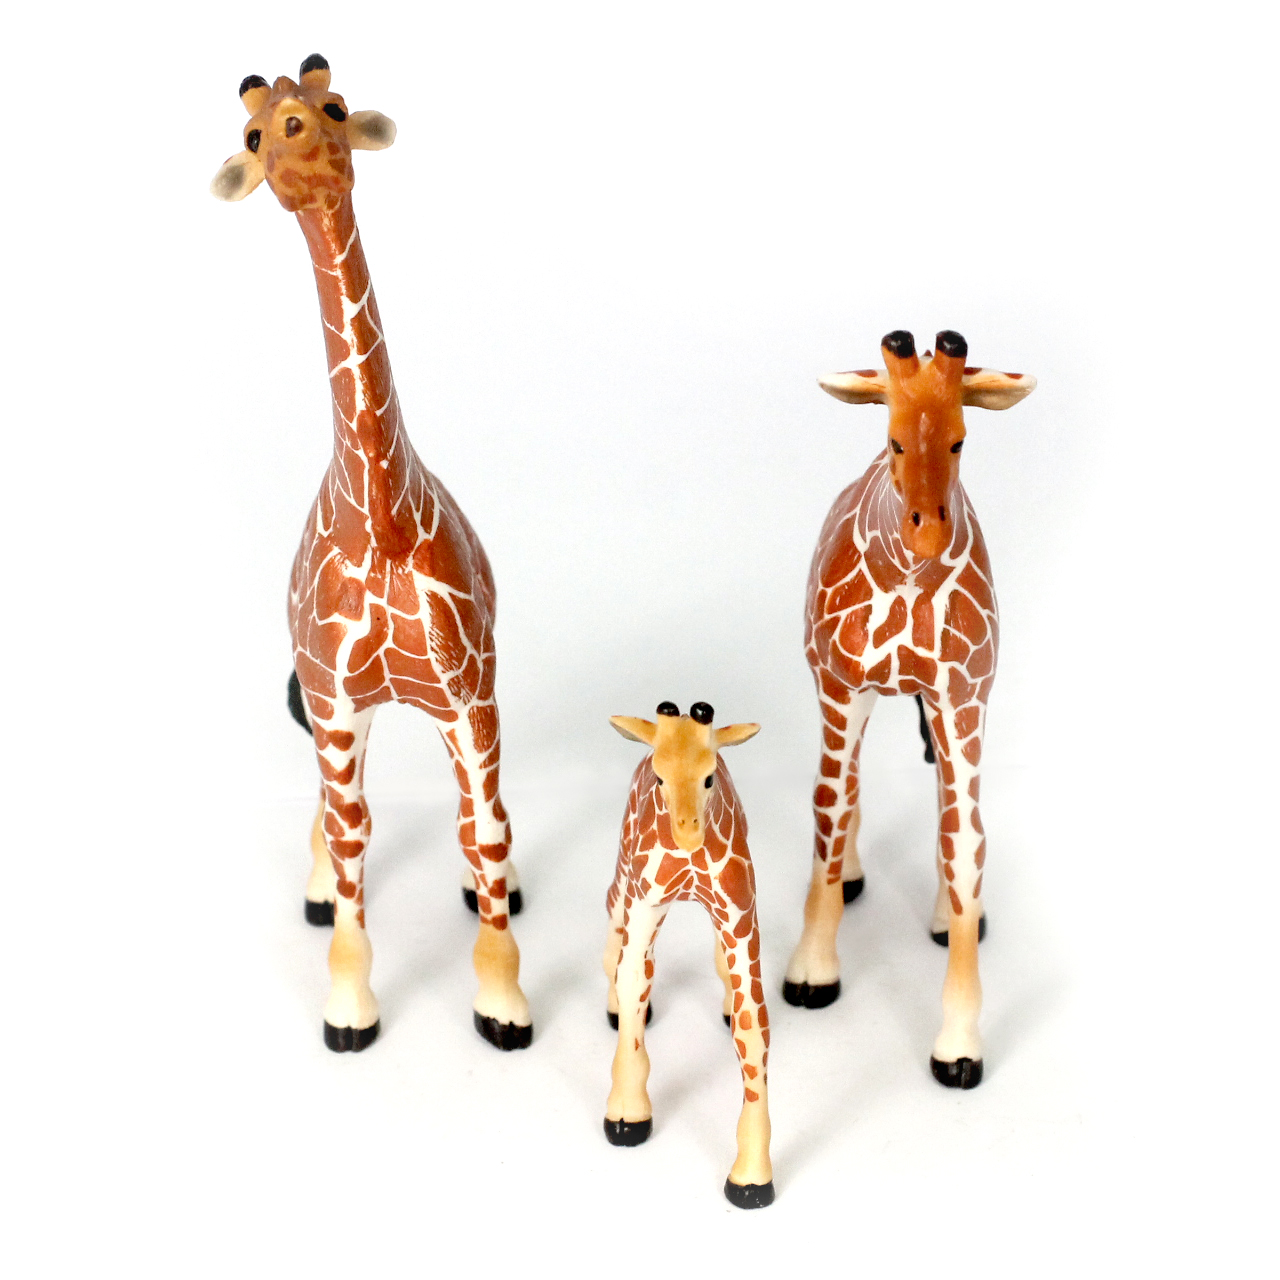 Small Giraffe Family, Different Sizes Realistic Detail Set of 3